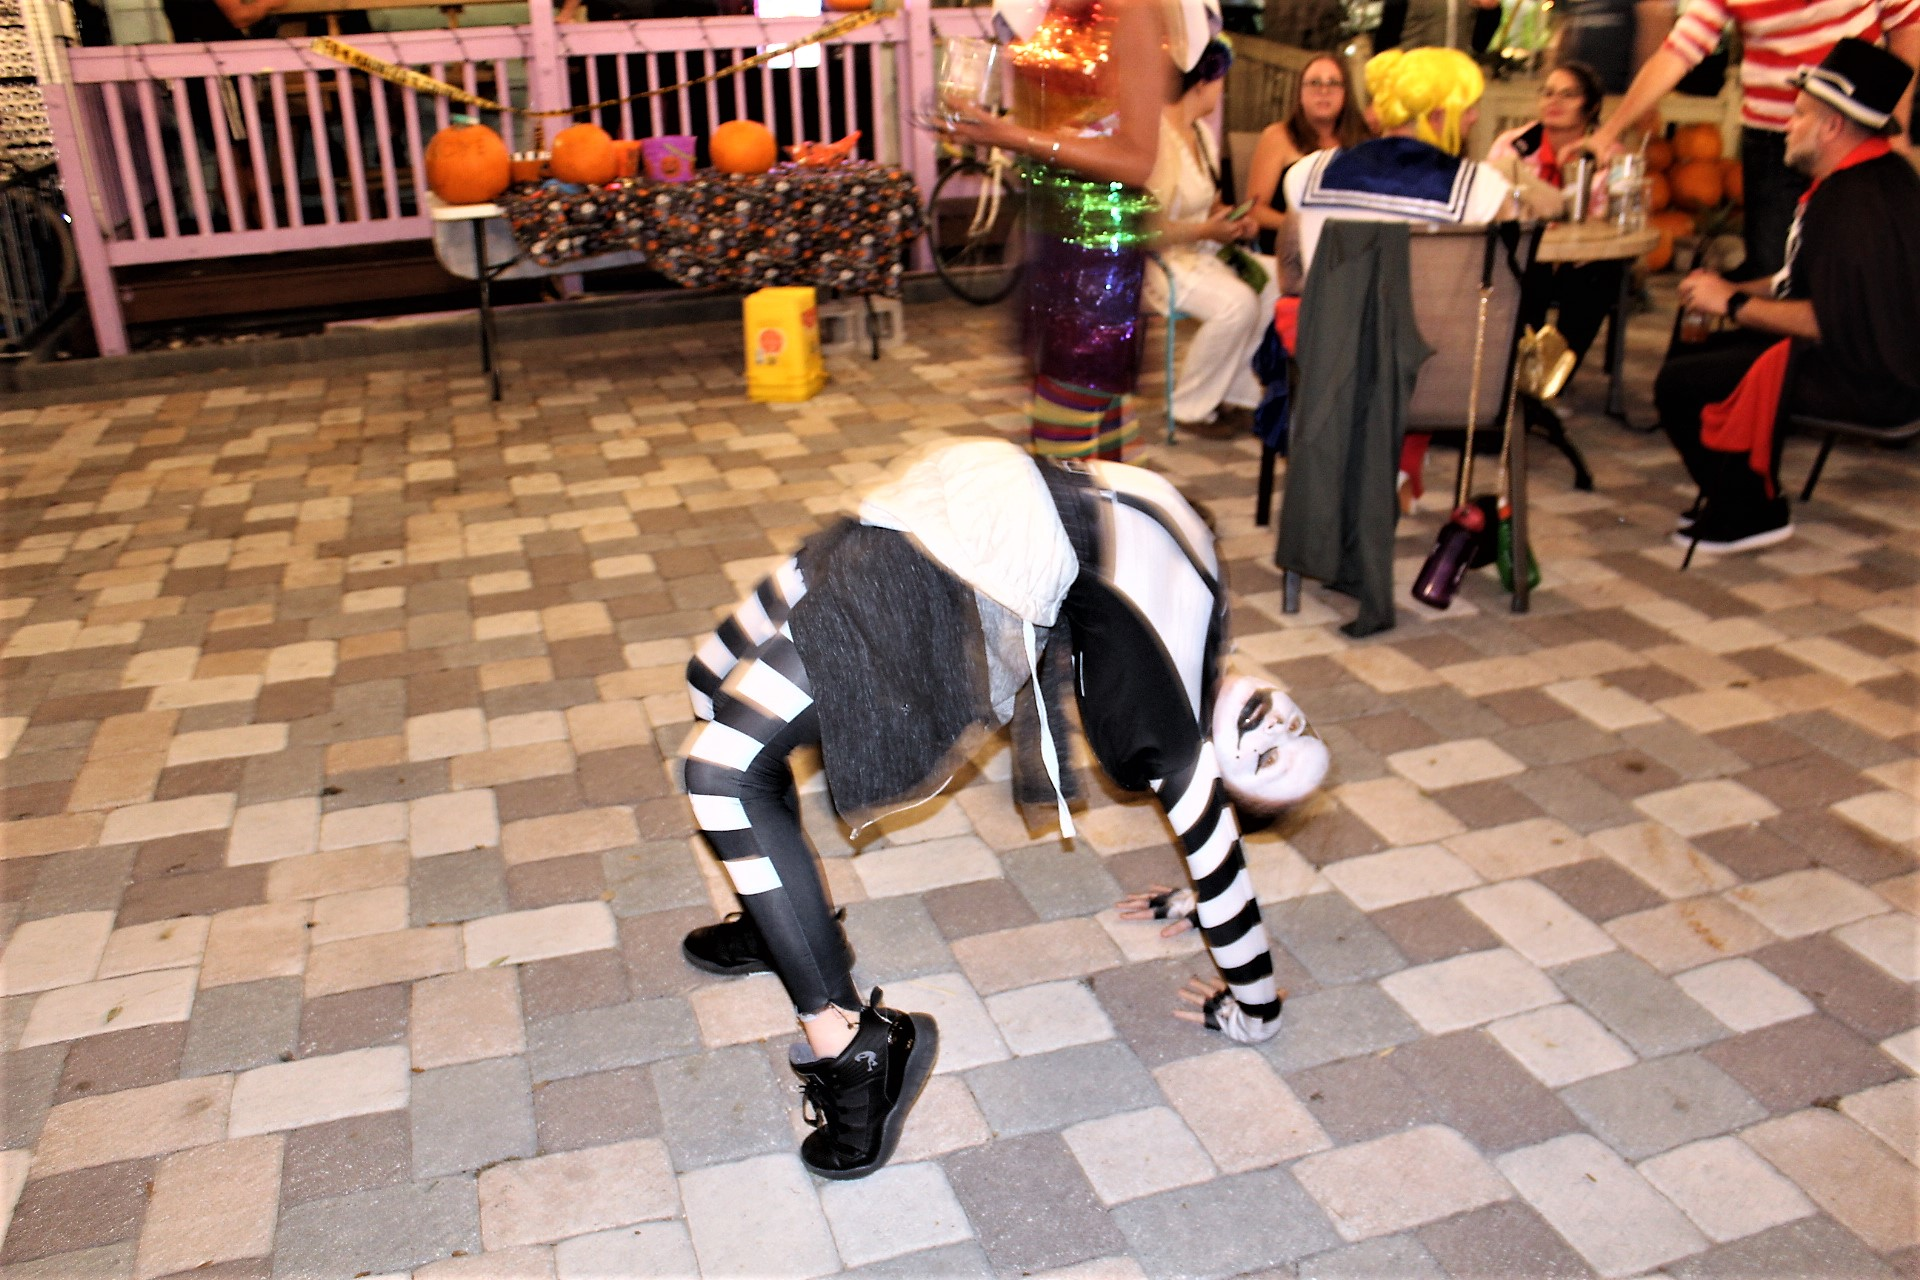 A person in black and white costume bent over backwards in a courtyard.